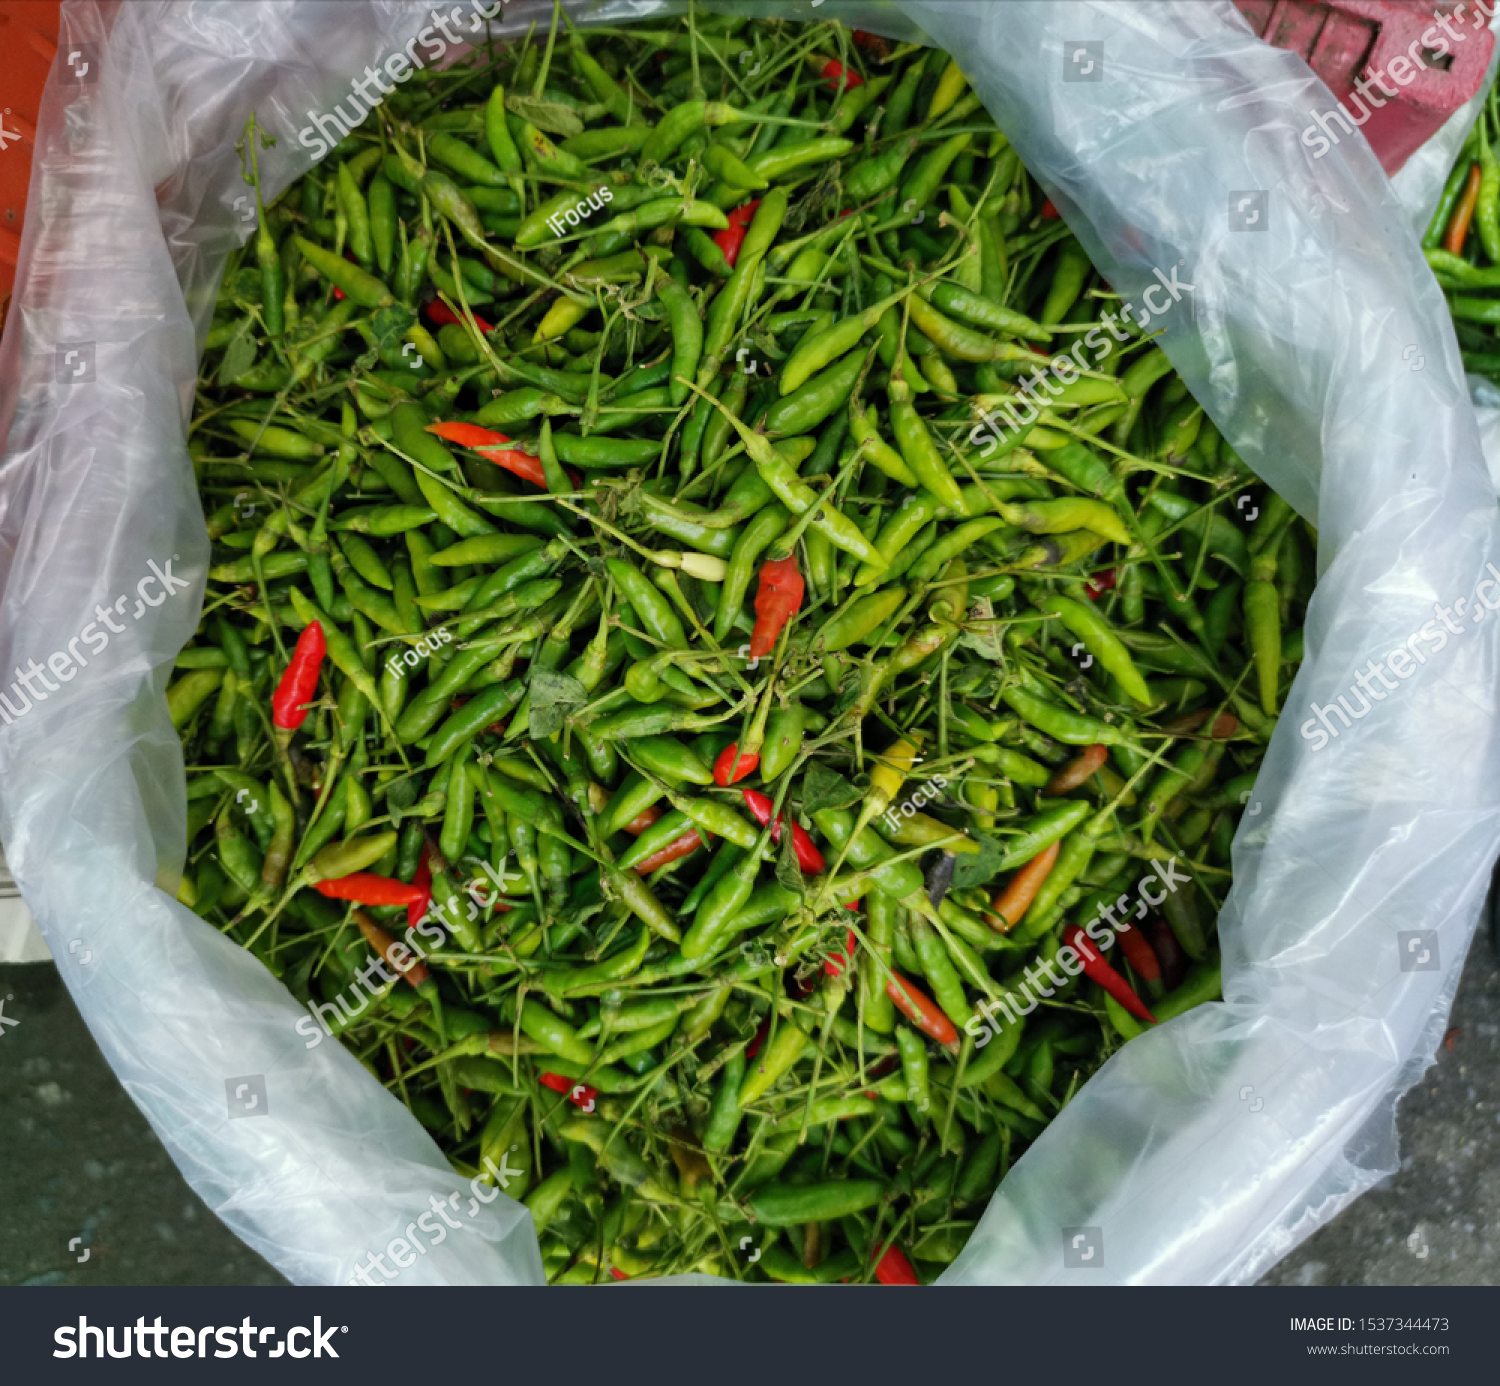 Essential ingredients to Thai cuisine, green and red chili